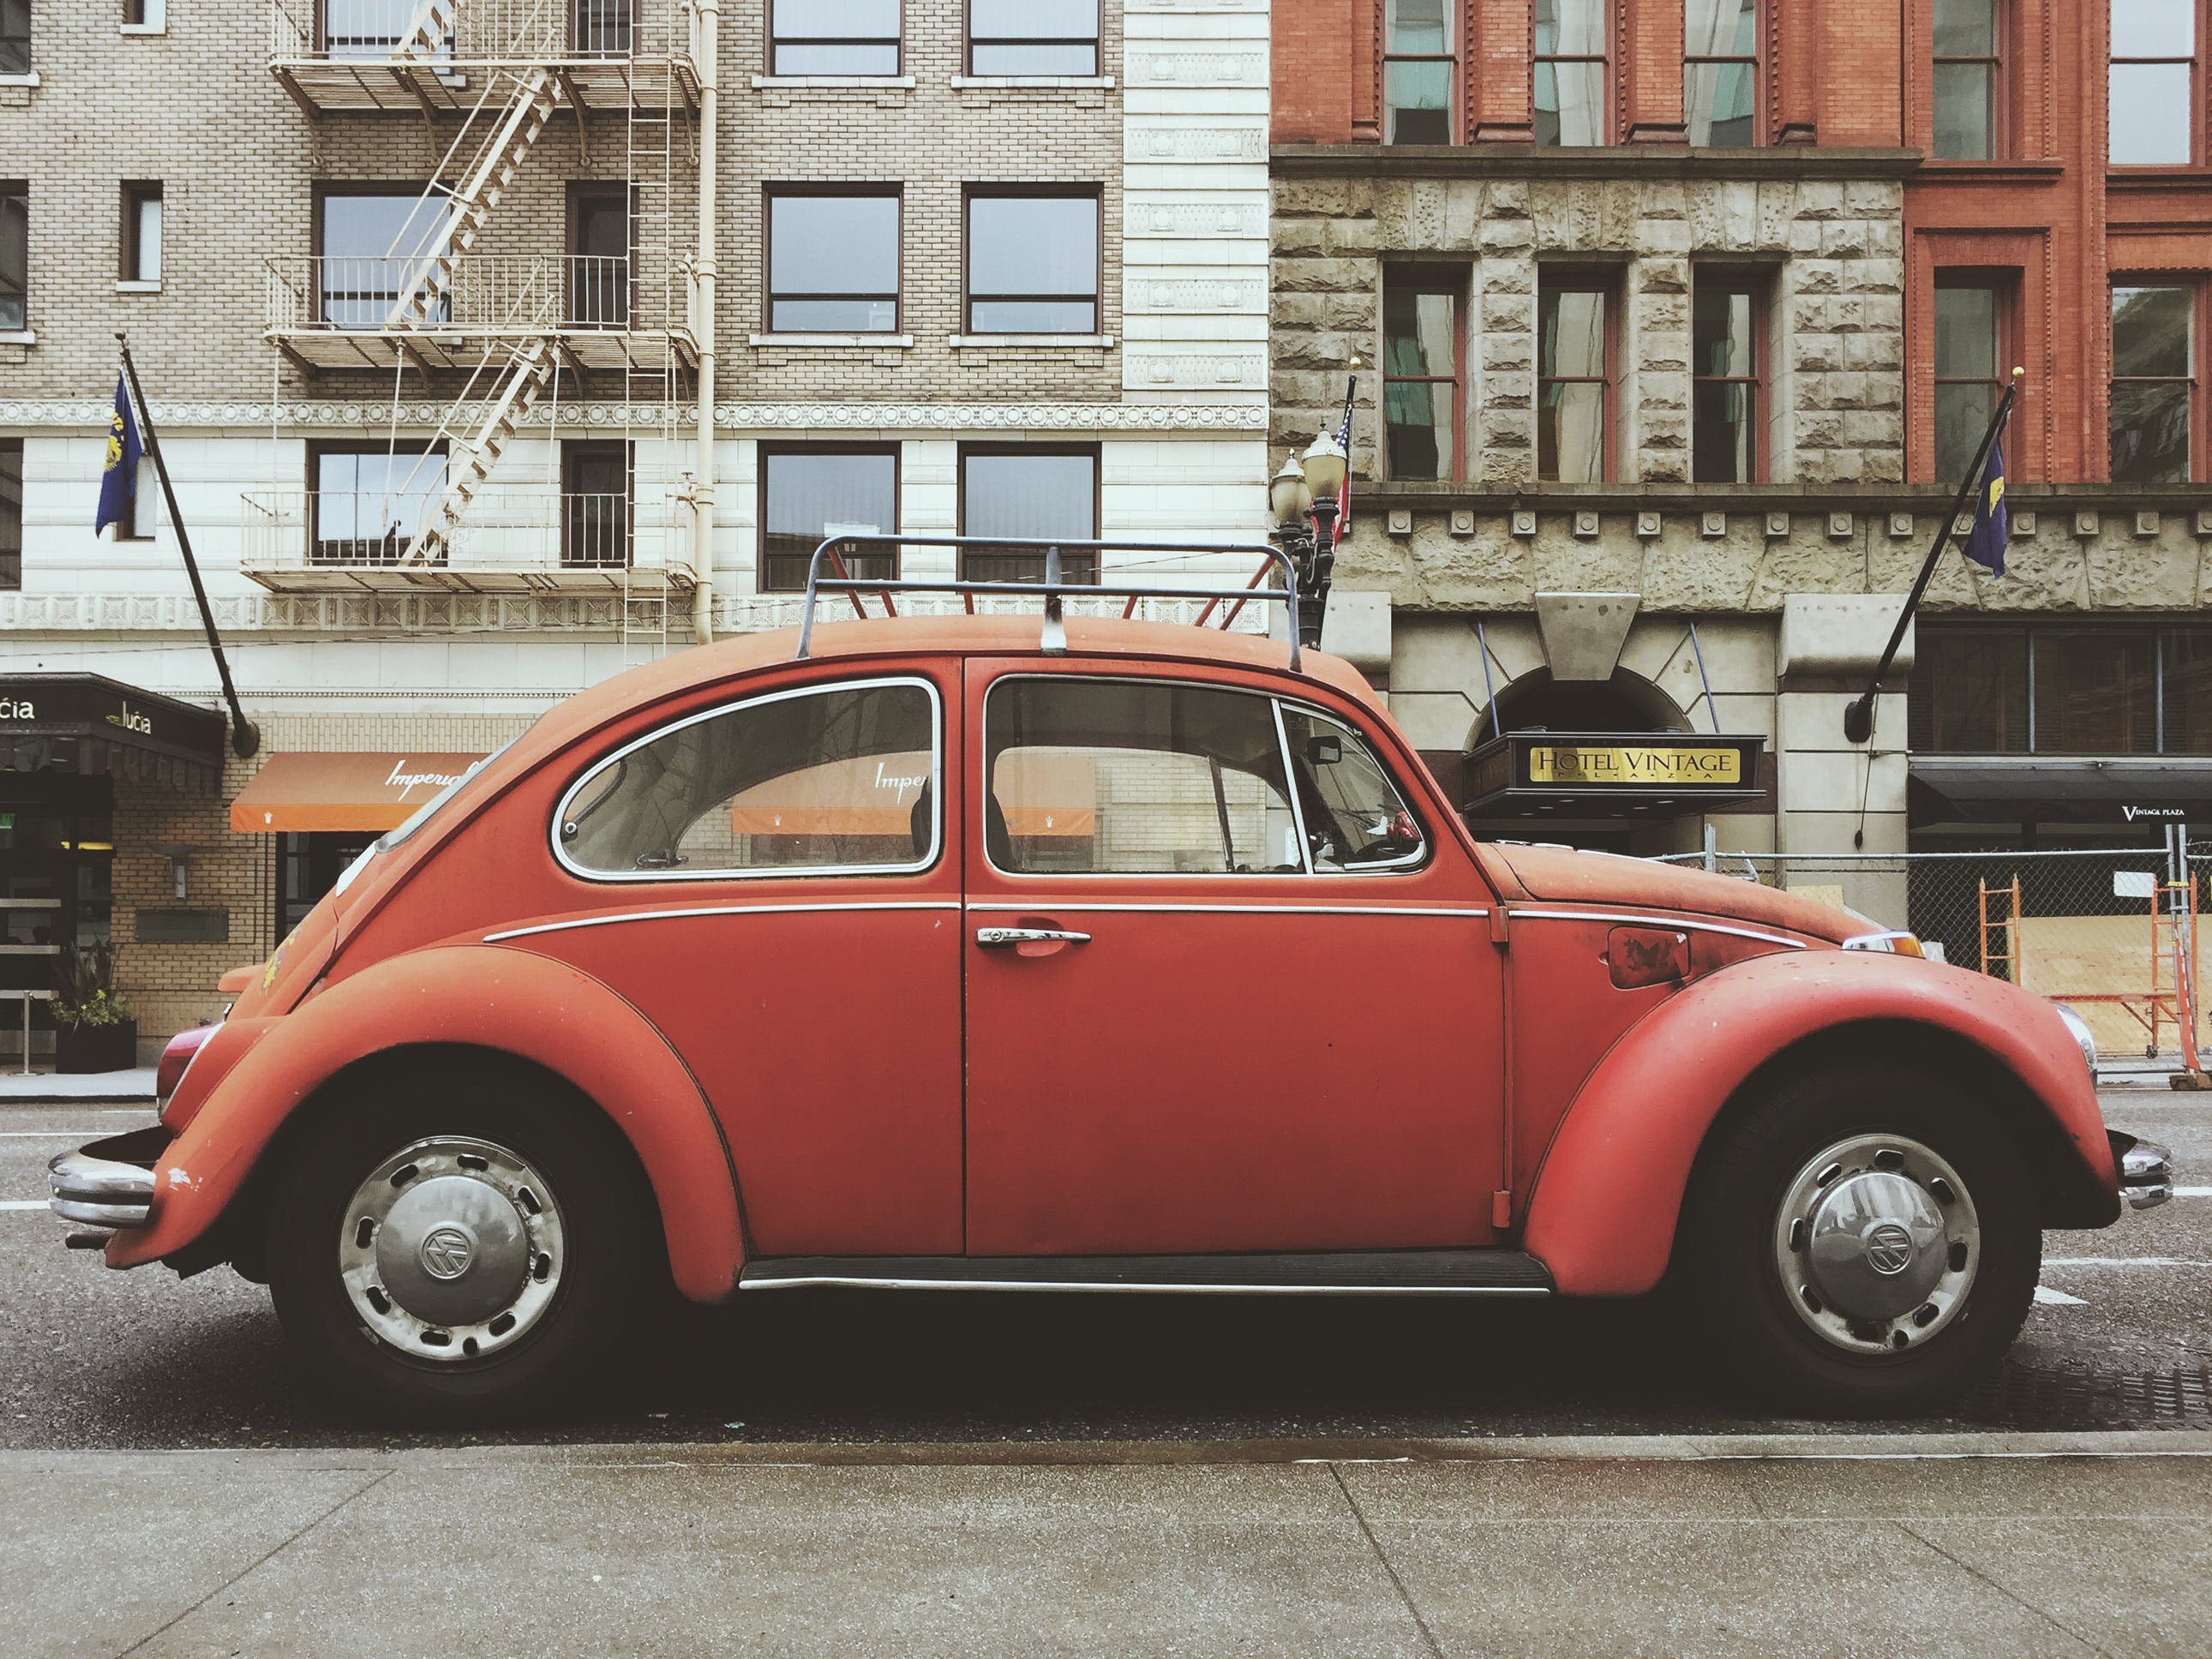 Red Volkswagen Beetle Car